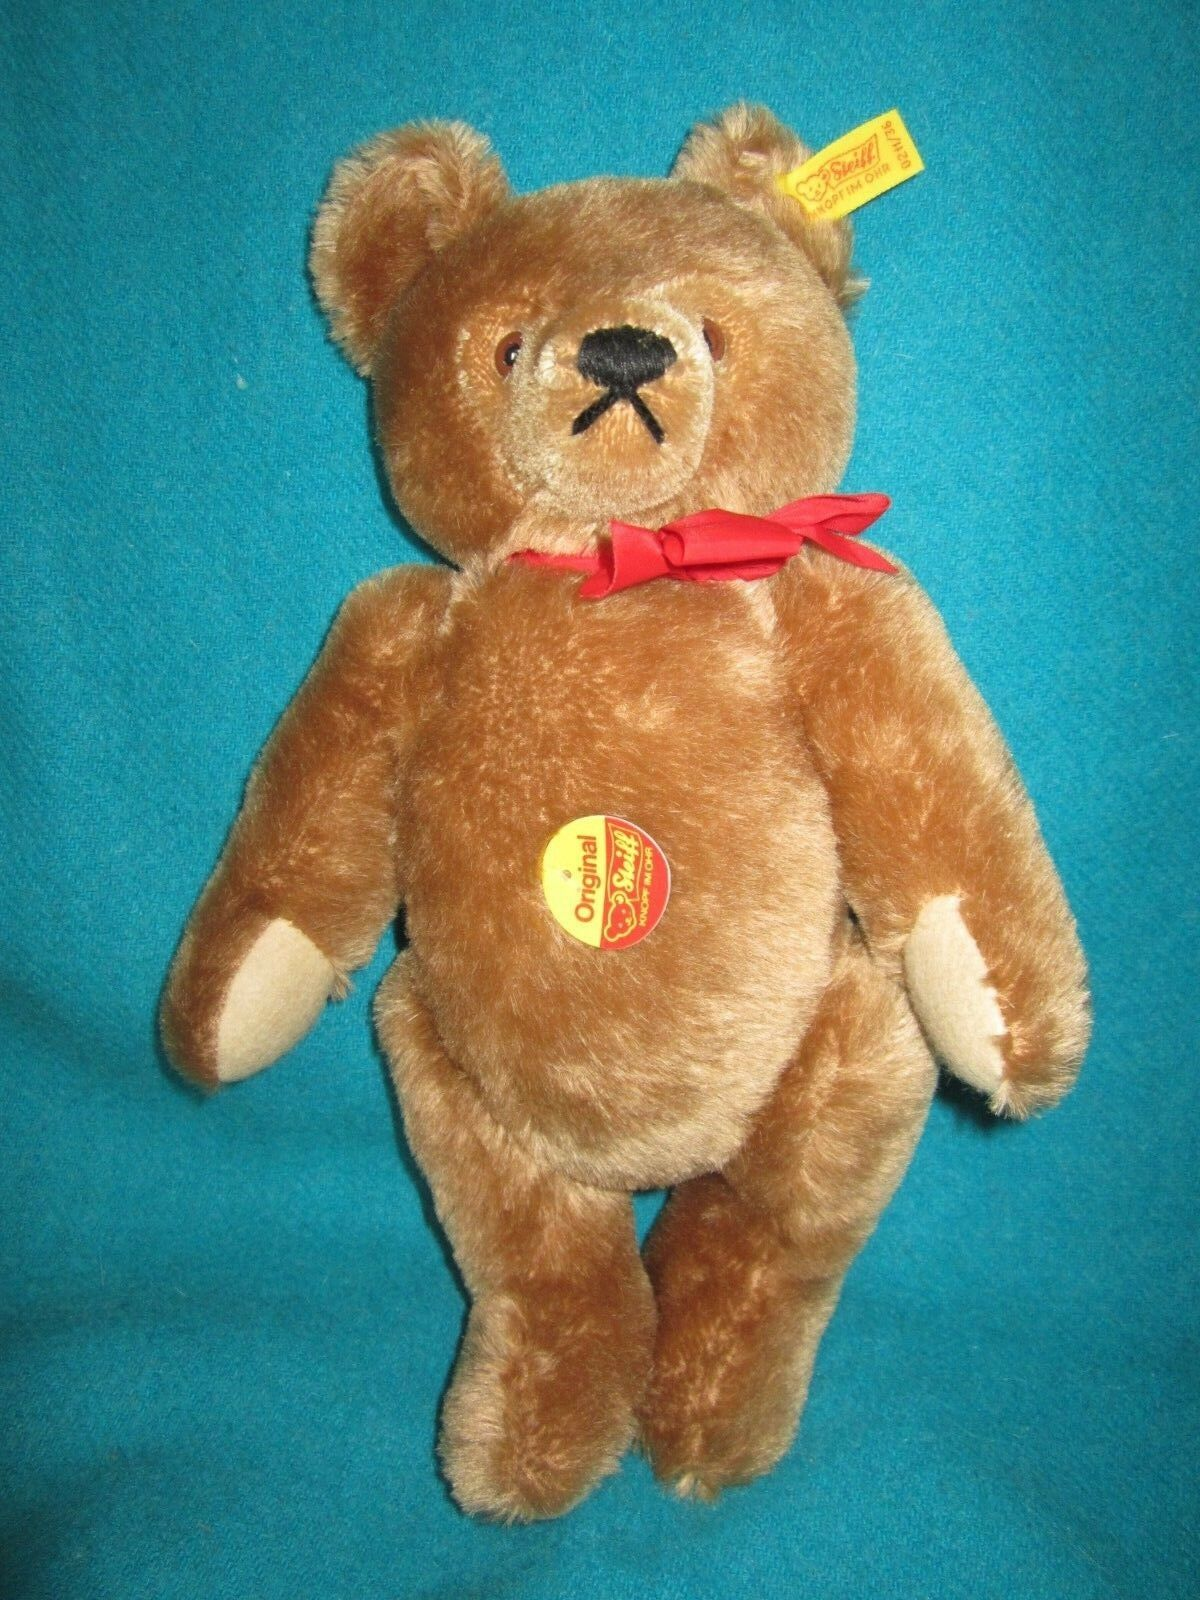 Vintage Steiff Teddy Bear 0211/36 Valentine Bear 1985 w/I.D Tags & button 14